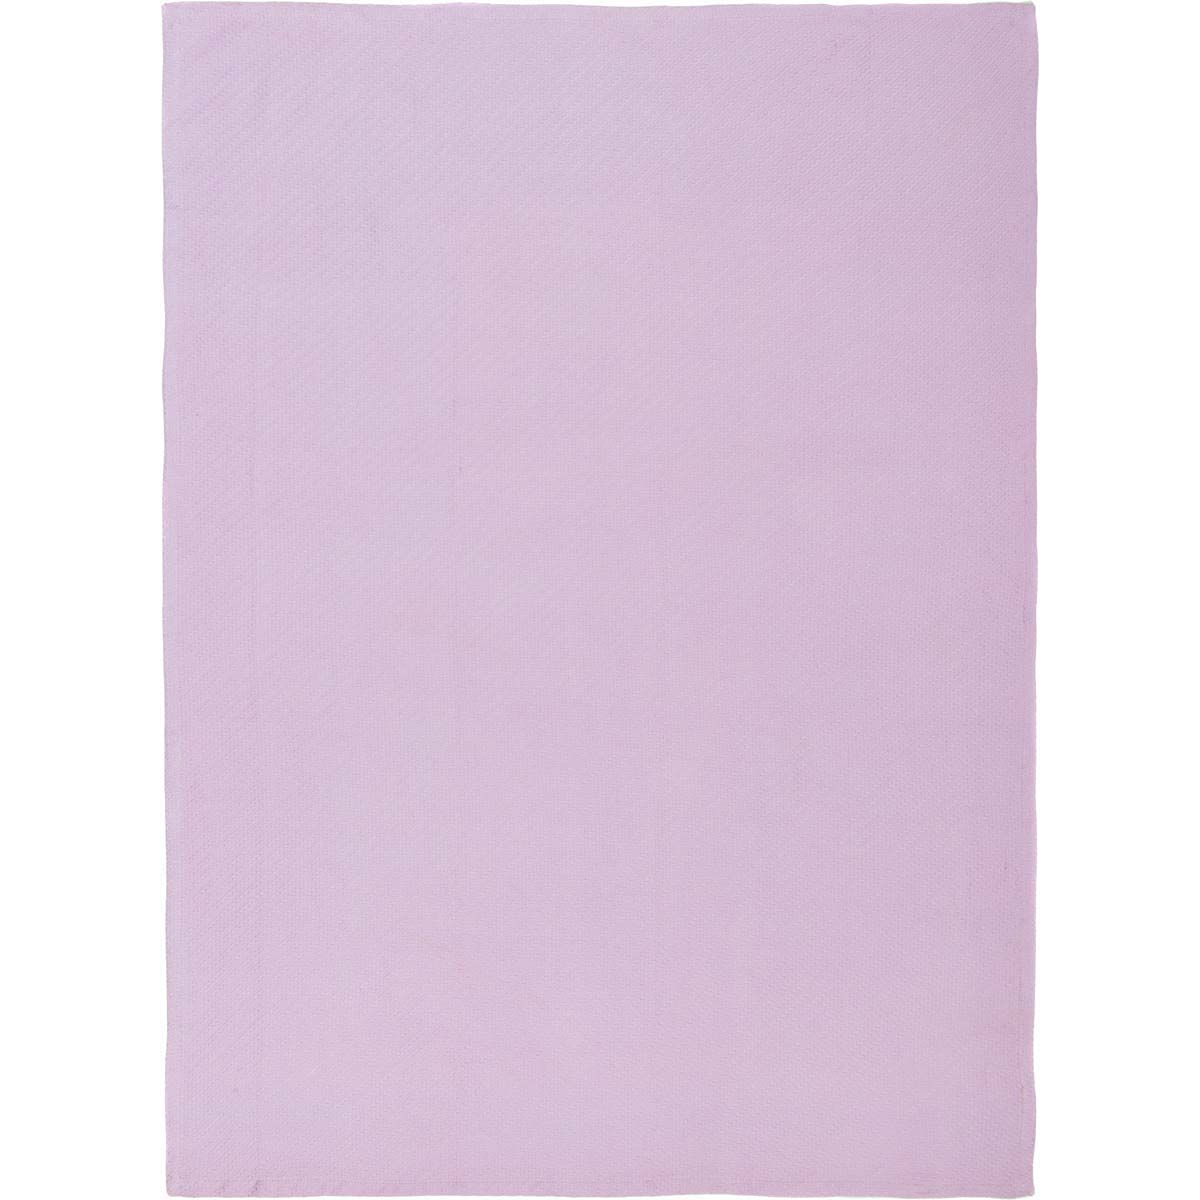 Lilac-Baby-Blanket-48x36-image-3